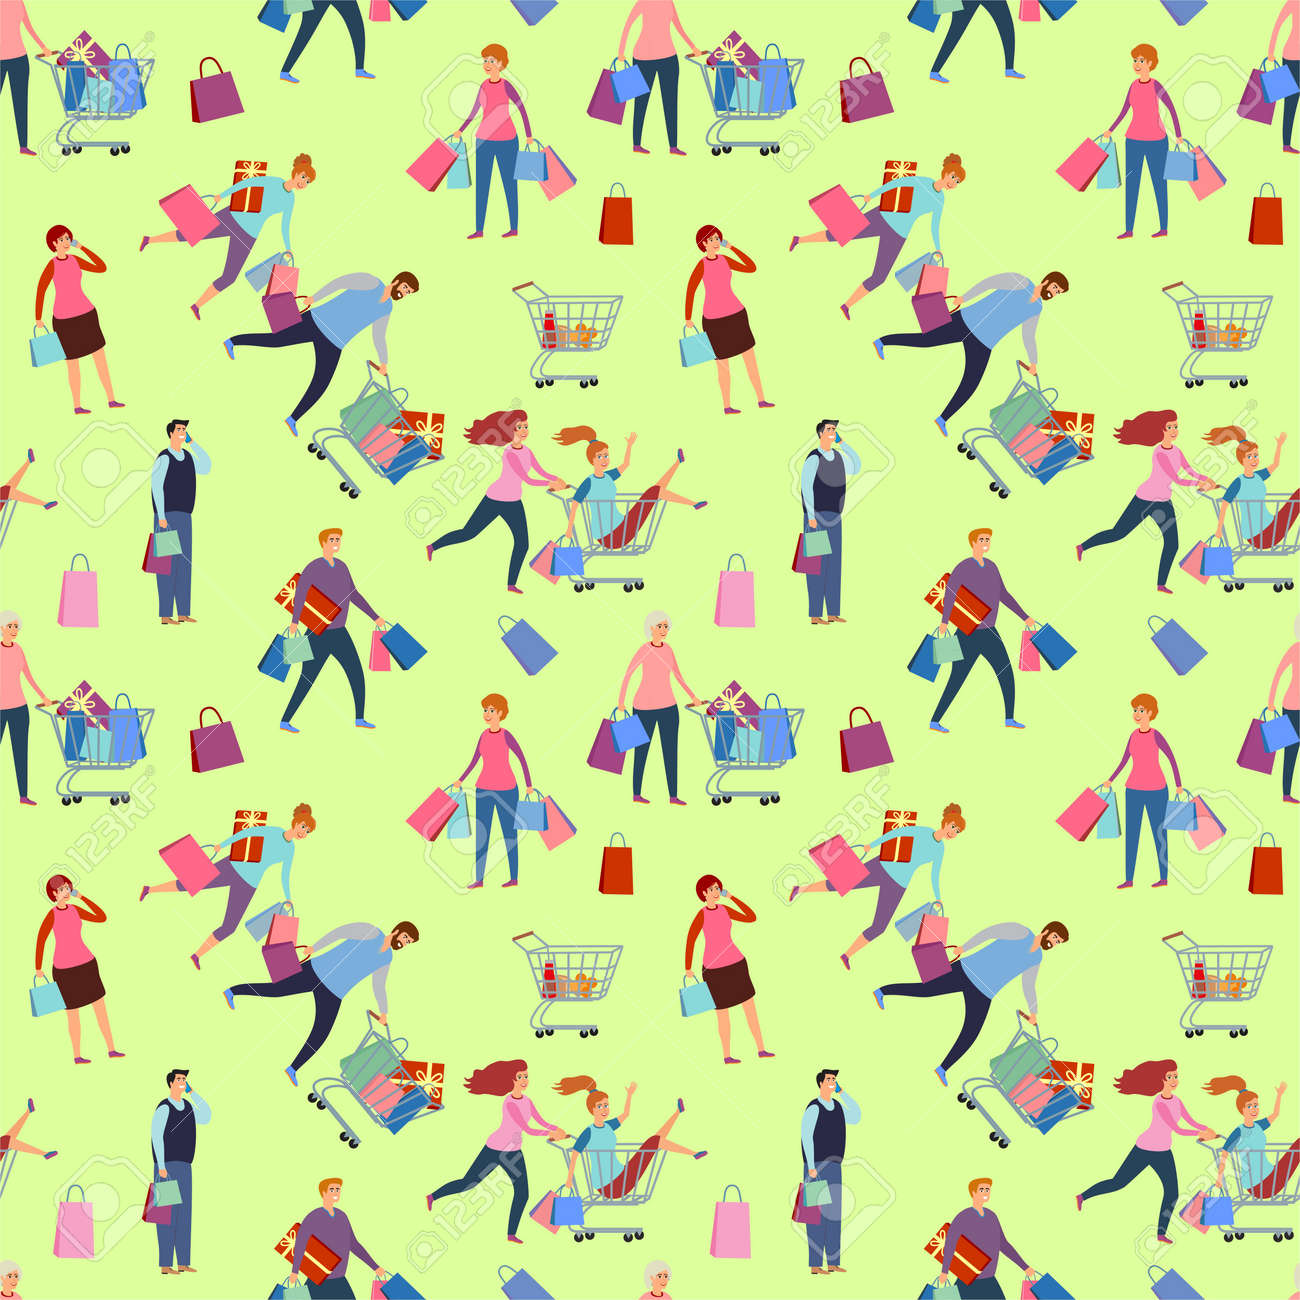 Shopping people, man and woman with bags. Happy people rush to shop seamless background. Girlfriends shopping. Family in the store. Seamless vector pattern illustration - 169743697